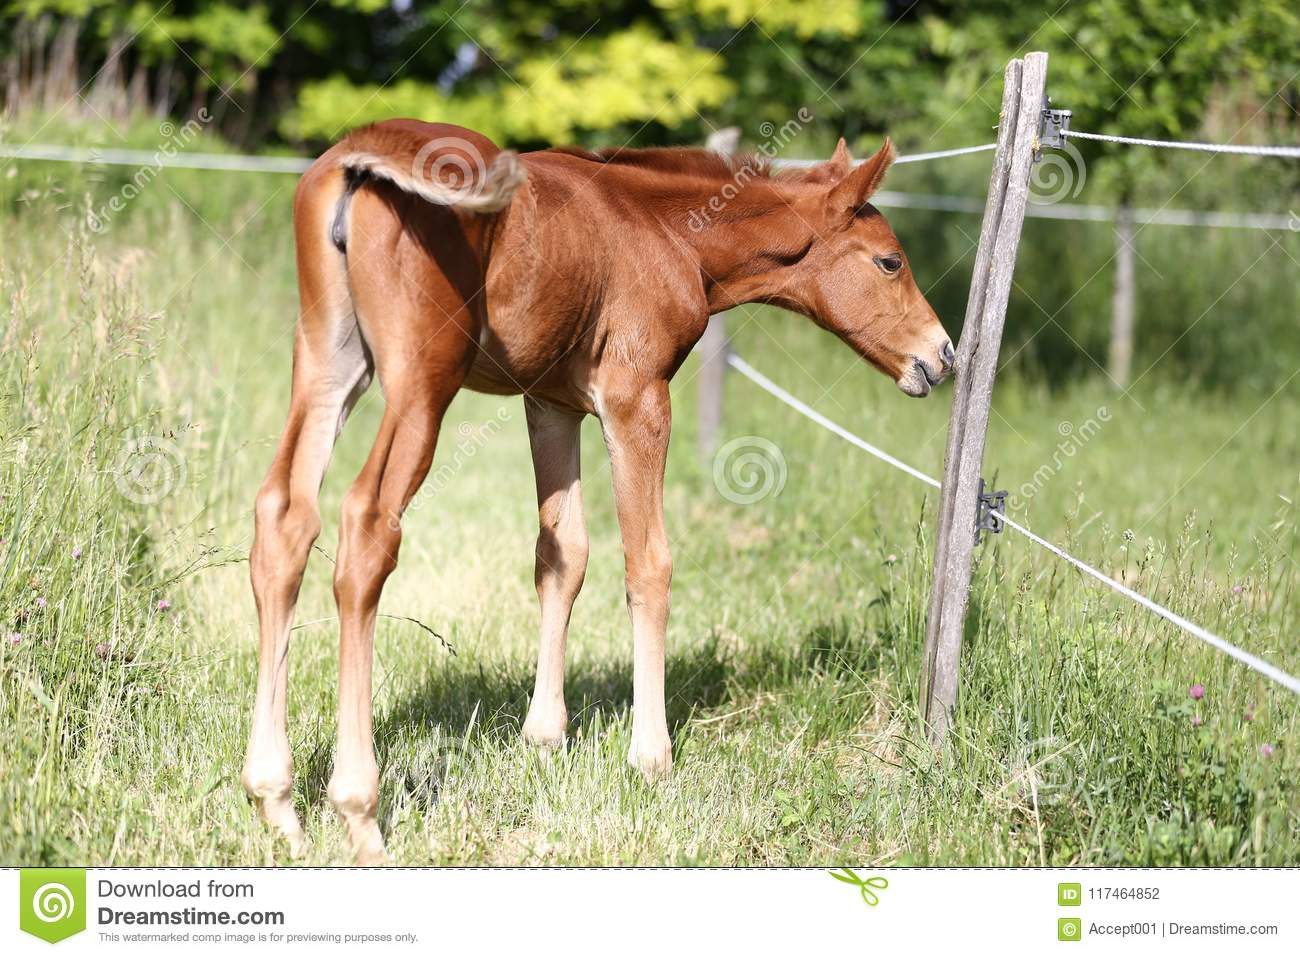 Summer Photo Of A Young Baby Horse Stock Photo Image Of Family Domestic 117464852